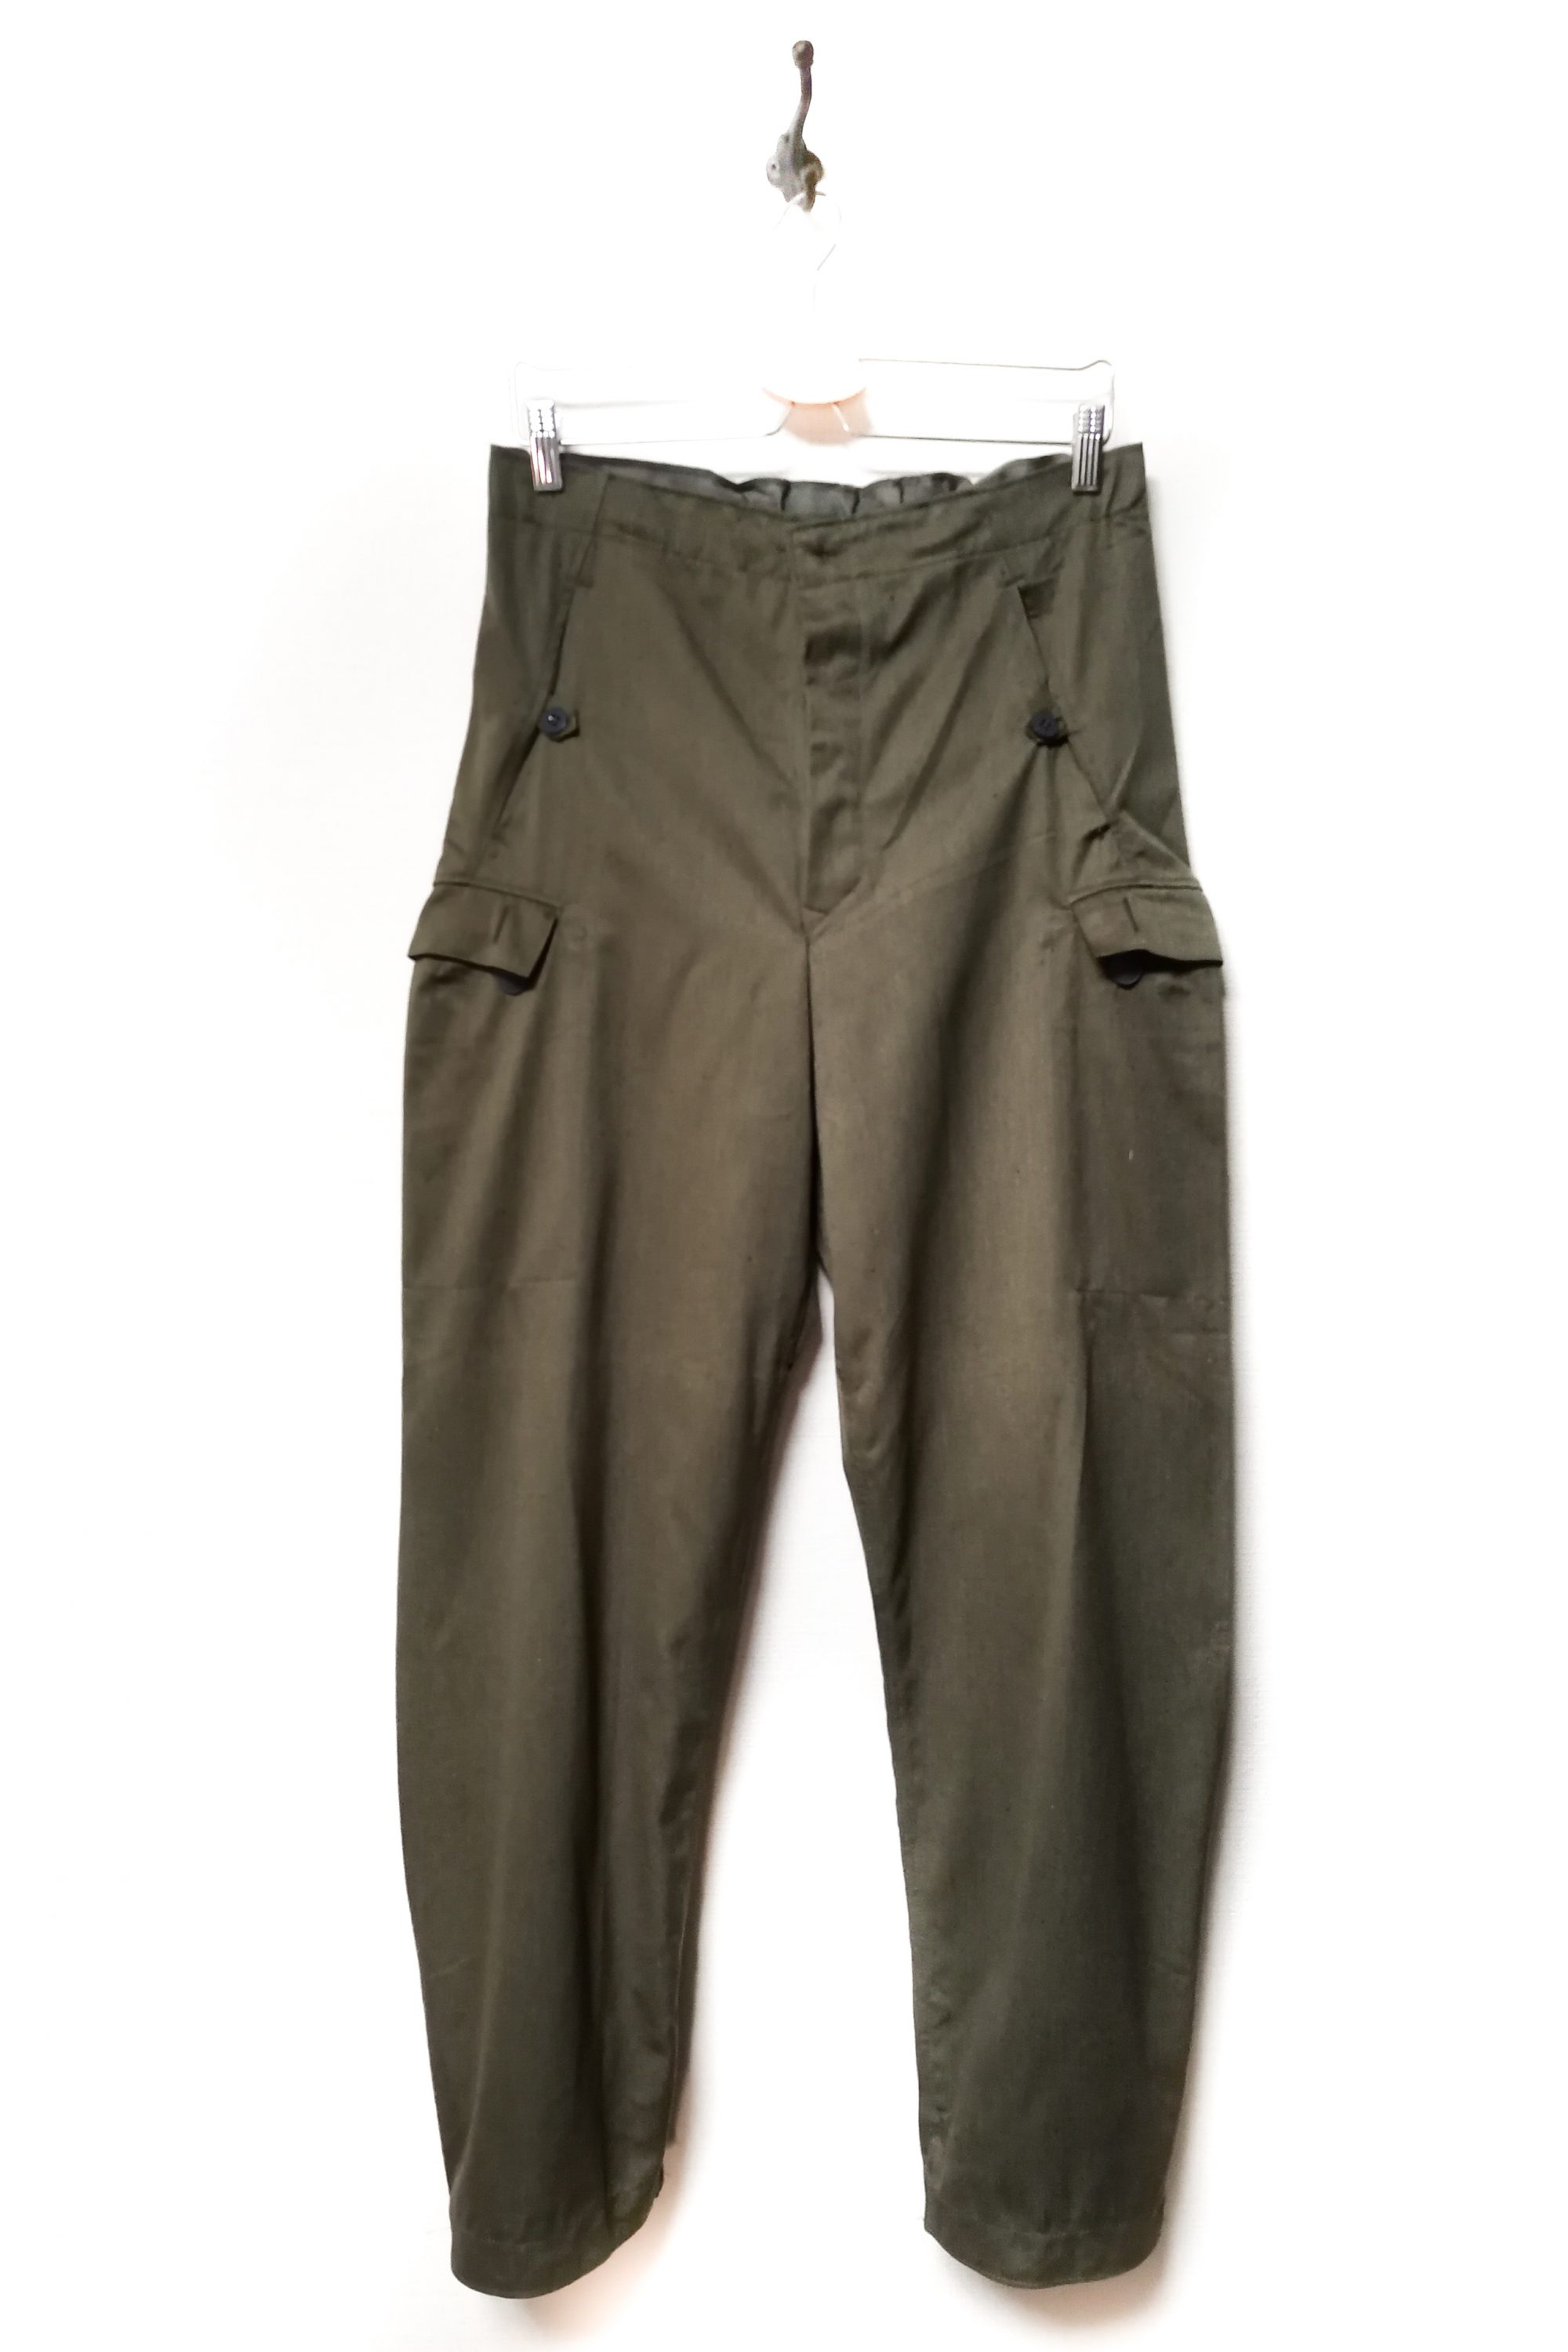 East German Military Trousers-9